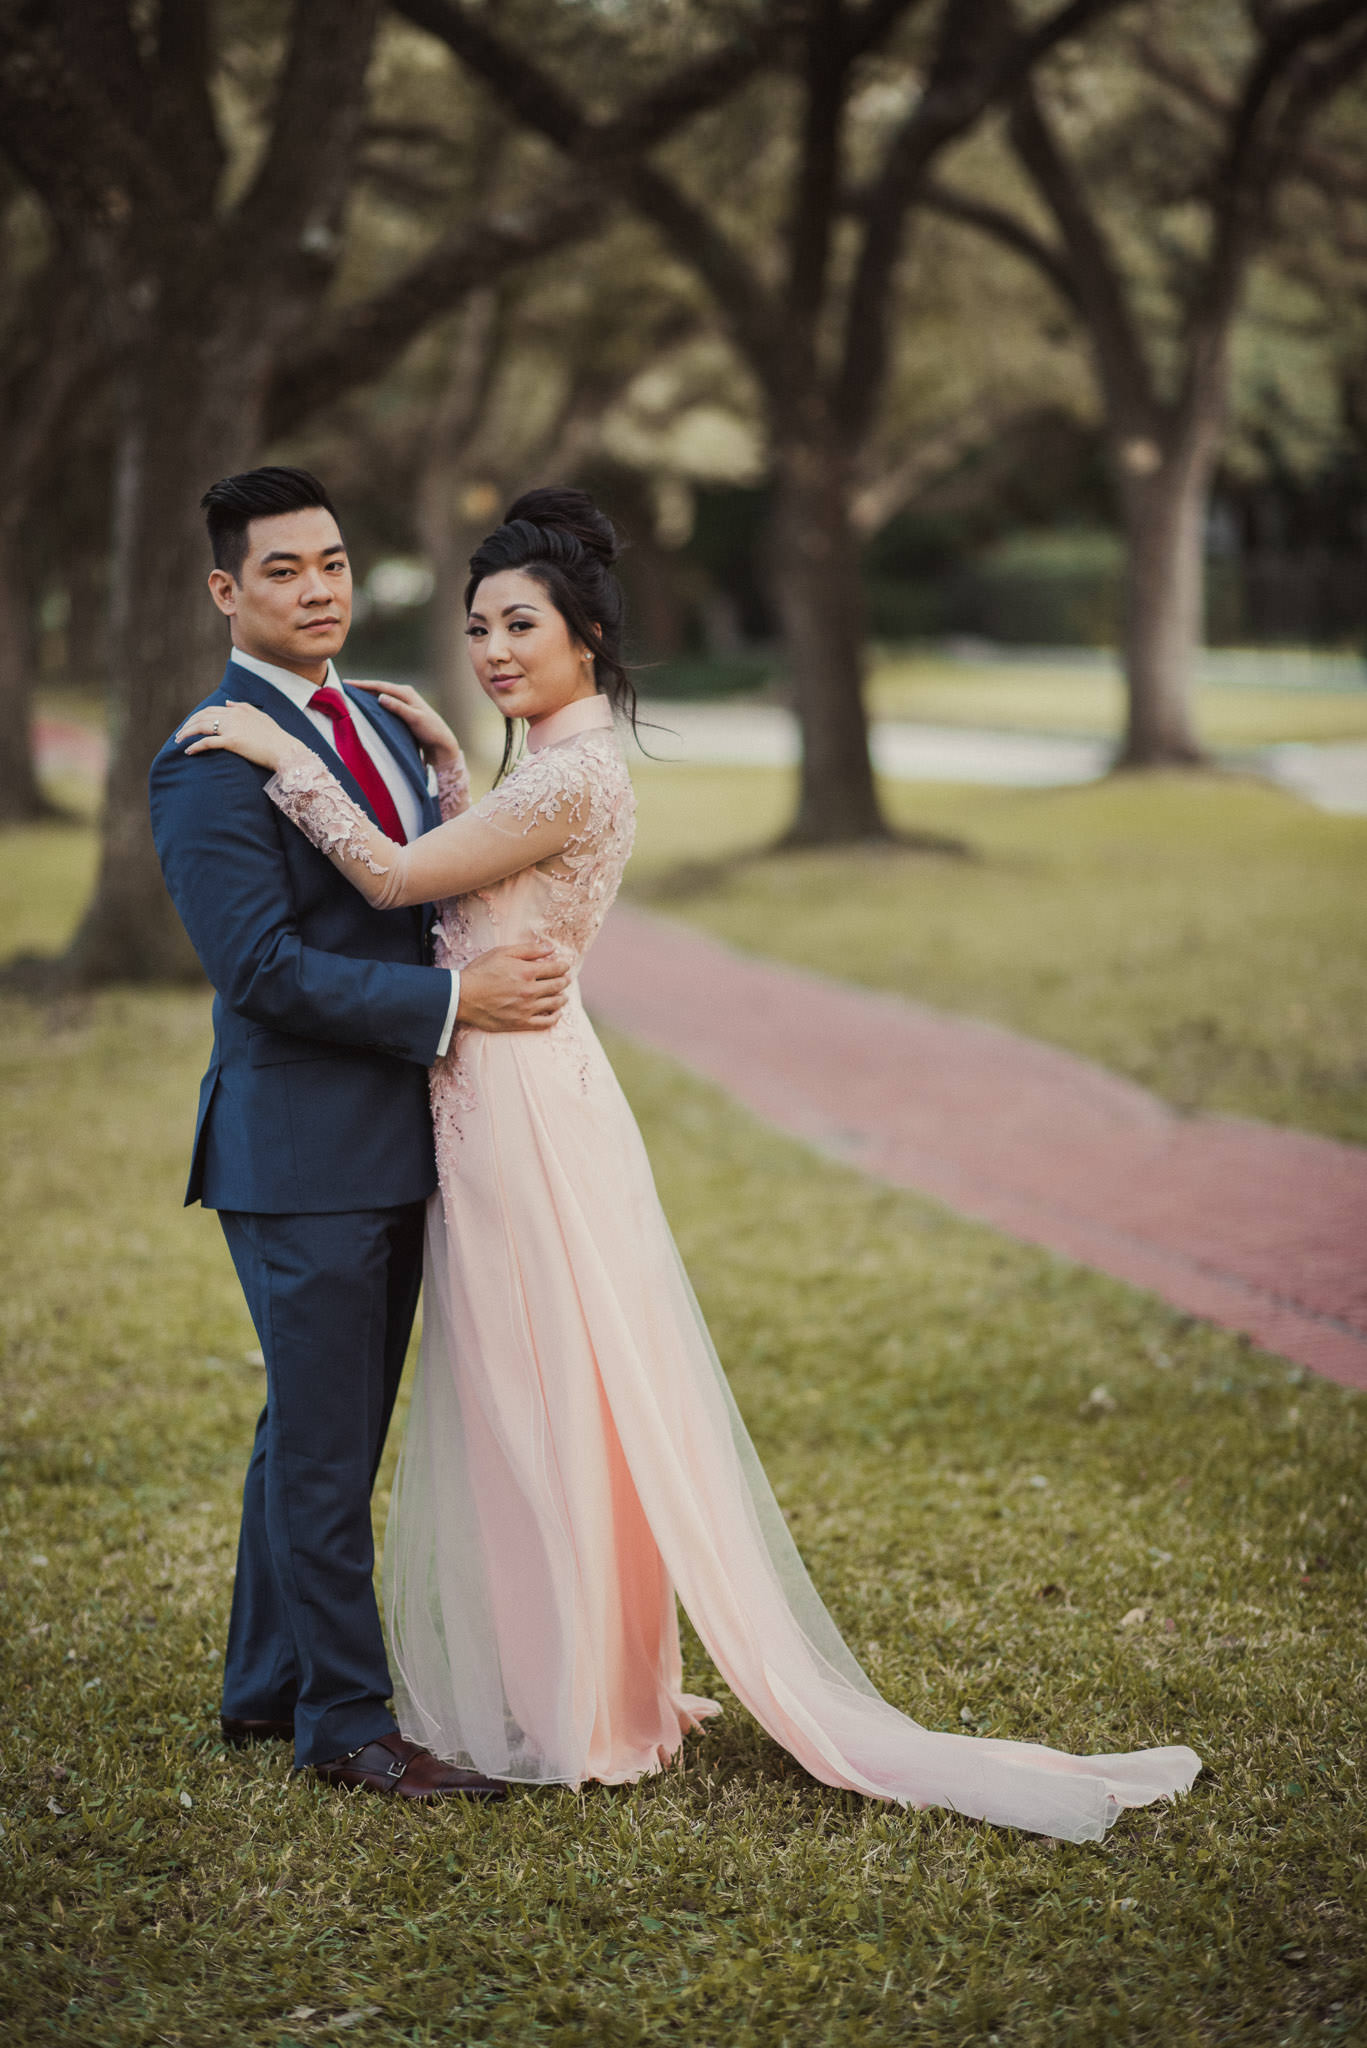 kim-michael-houston-vietnamese-tea-ceremony-engagement-downtown-boulevard-oaks-photographer-55.jpg